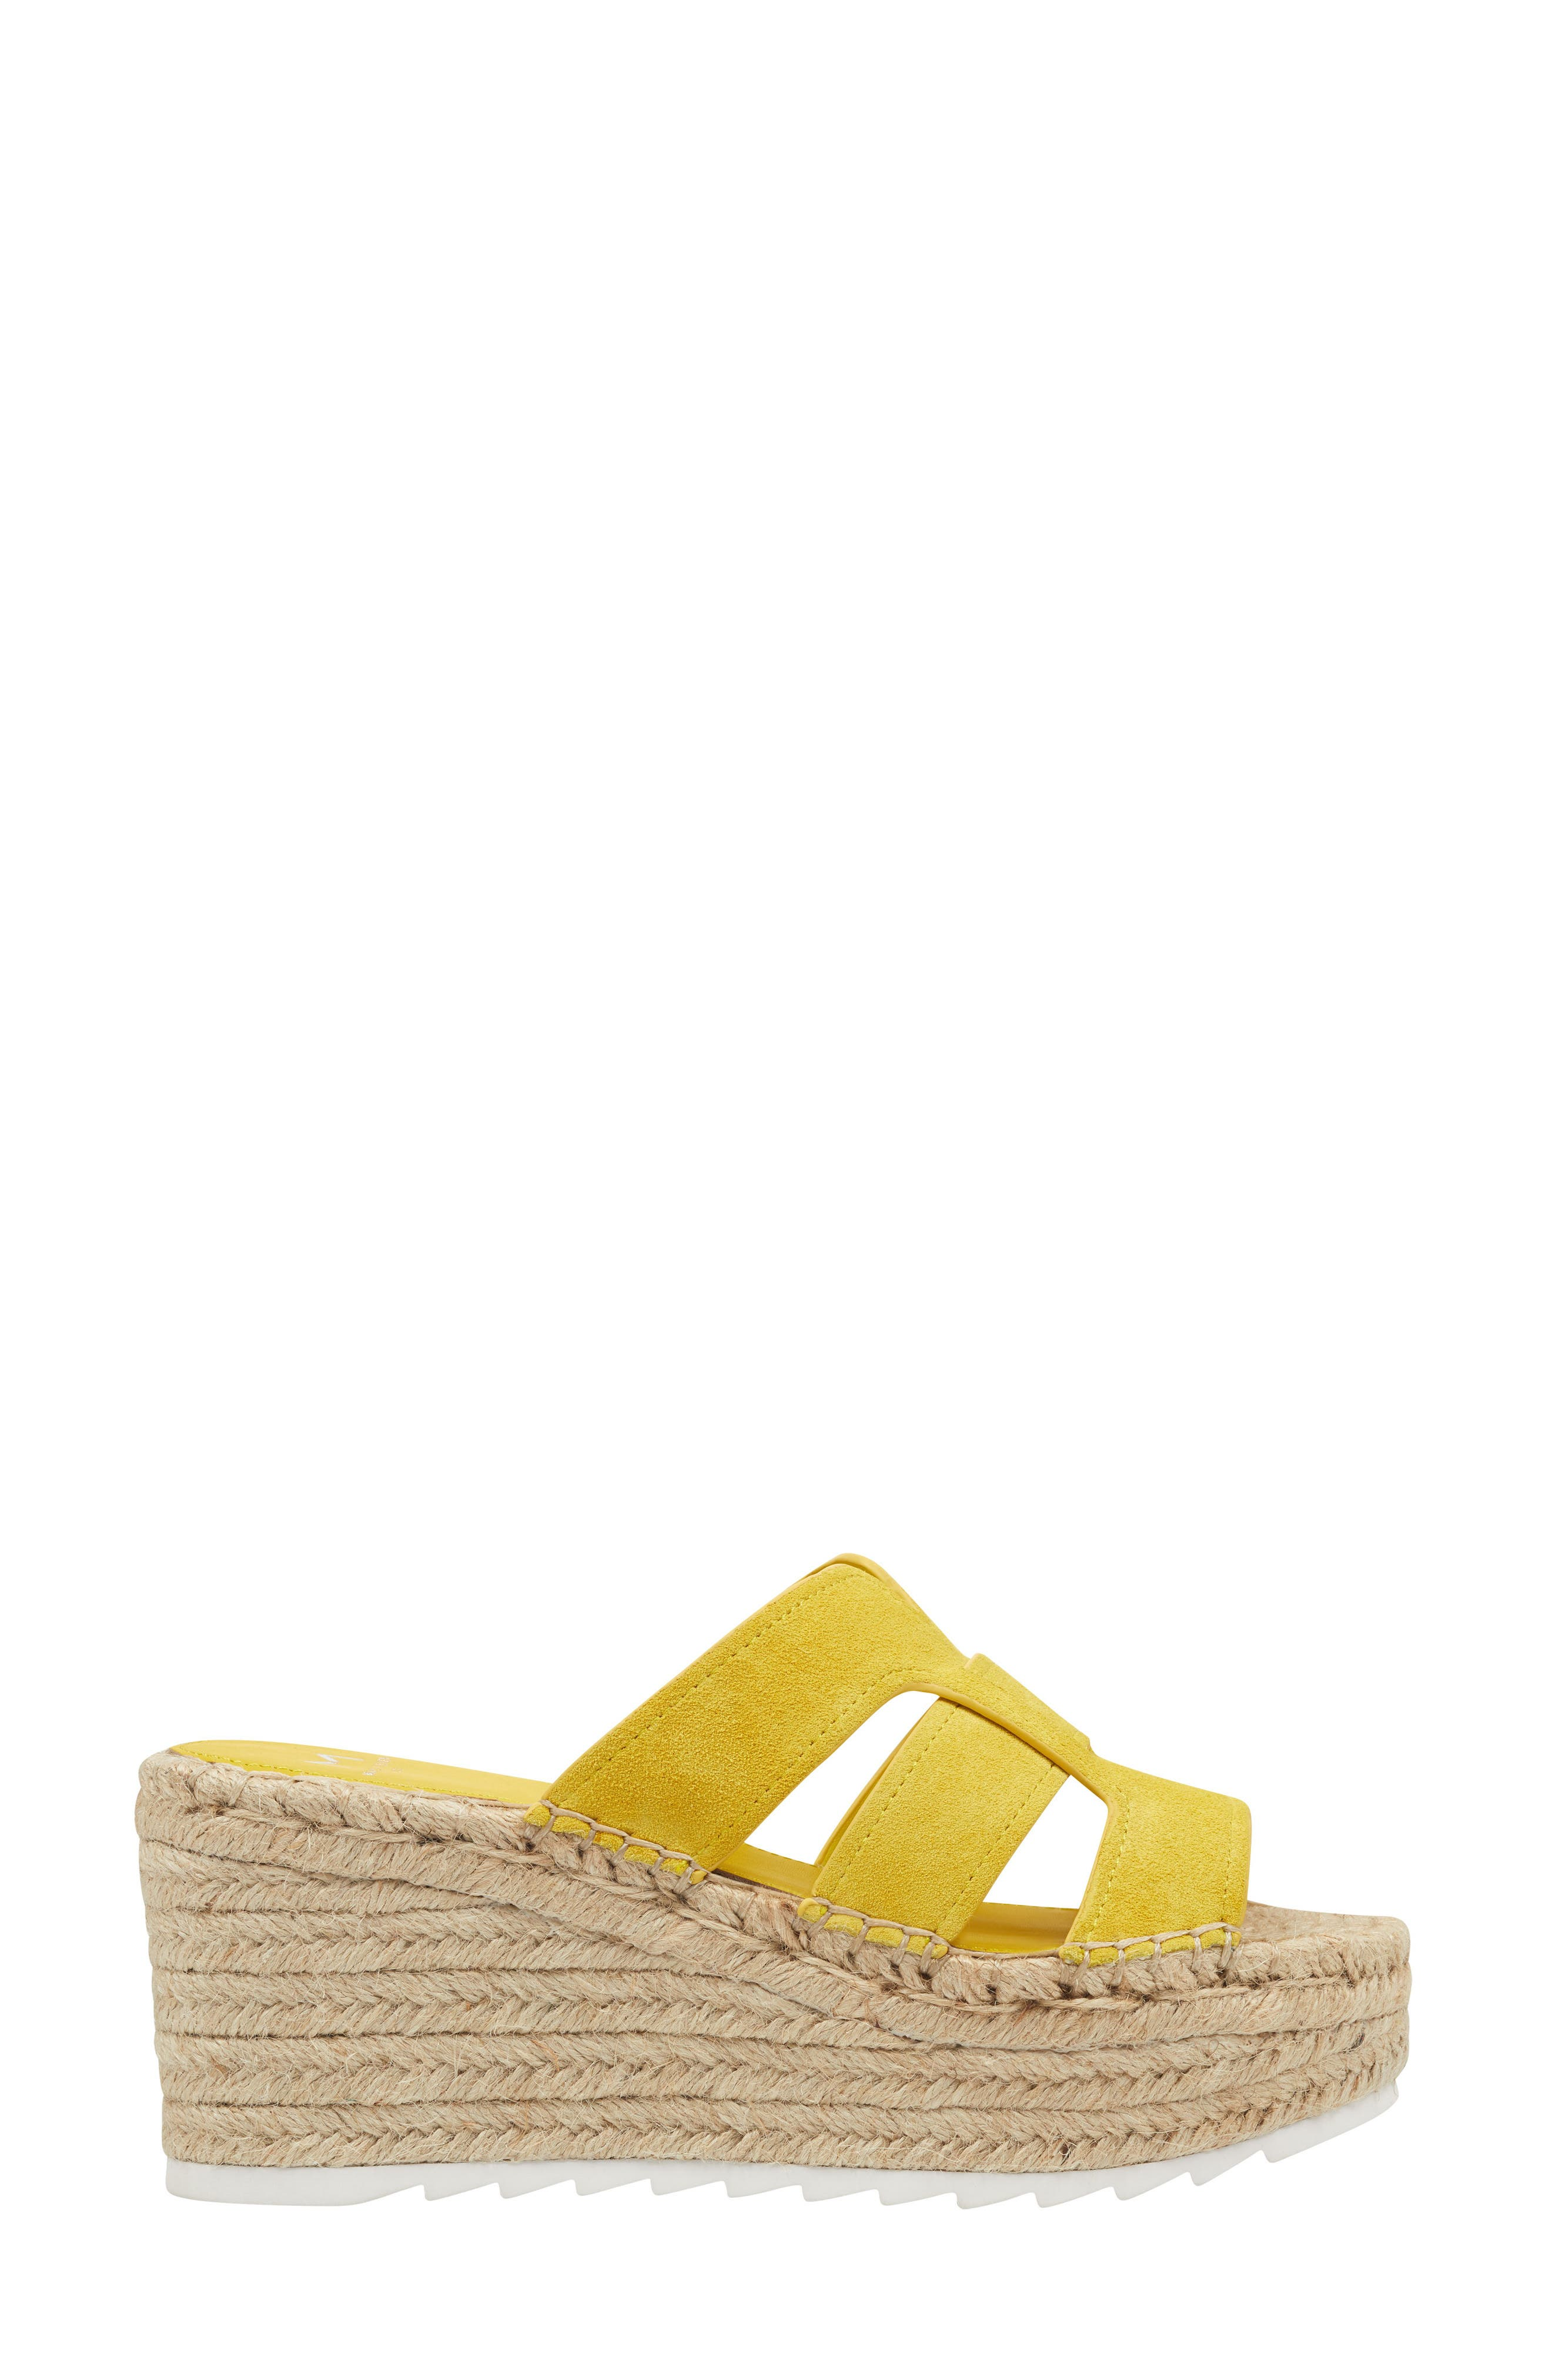 MARC FISHER LTD, Robbyn Espadrille Wedge Sandal, Alternate thumbnail 3, color, YELLOW SUEDE